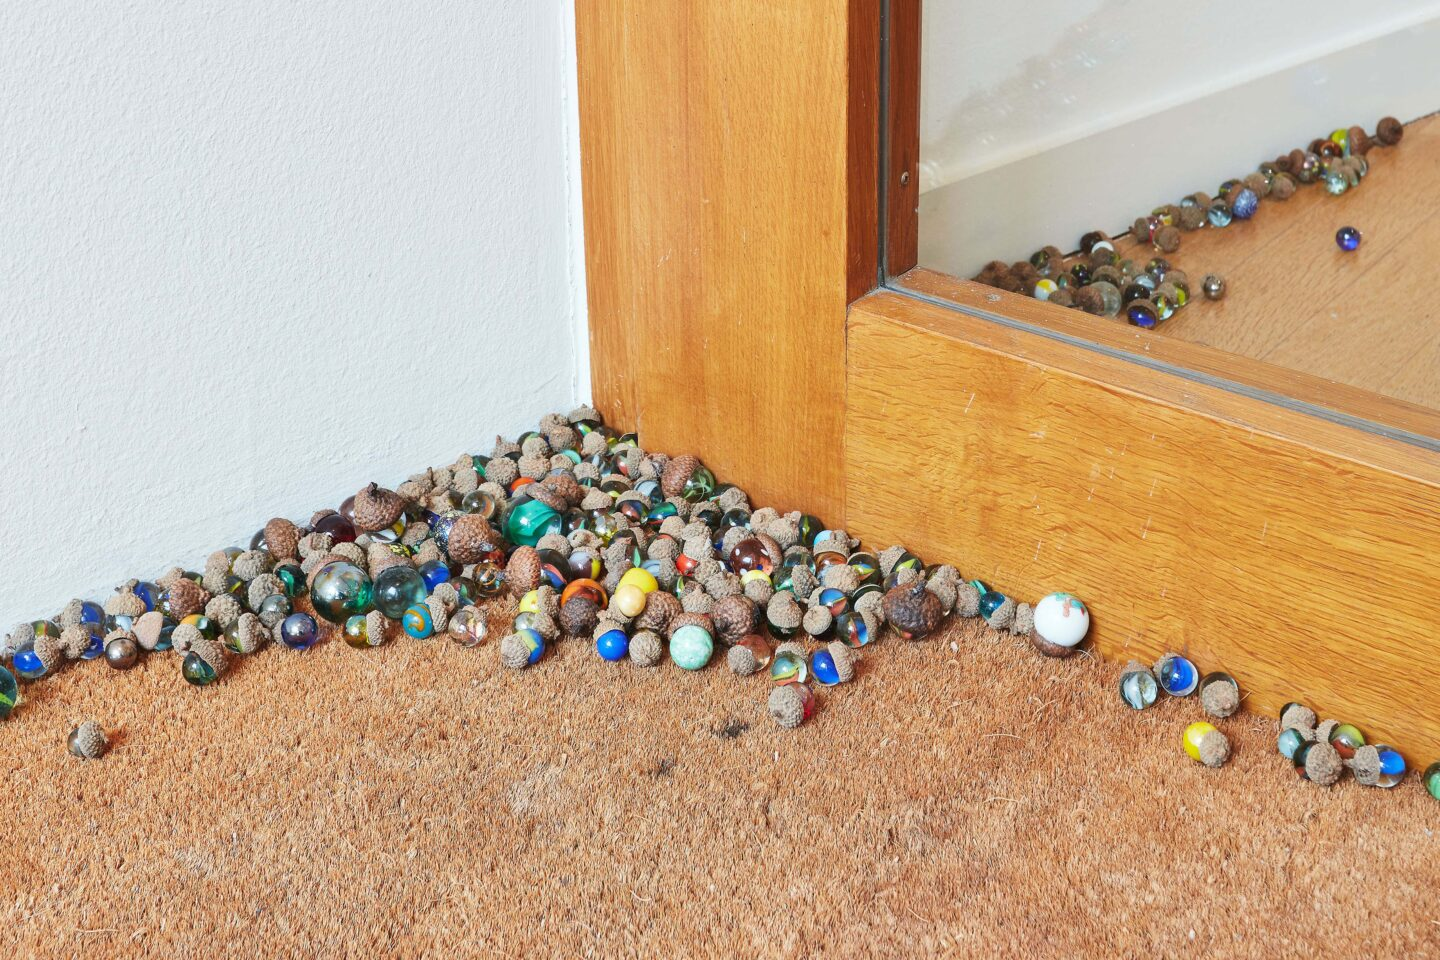 Exhibition View Groupshow «Motor; view on Aline Zeltner, untitled, marbles in acorn hats, variable dimensions, 2020» at Kunstraum Riehen, Riehen, Basel, 2020 / Photo: Moritz Schermbach / Courtesy: the artist